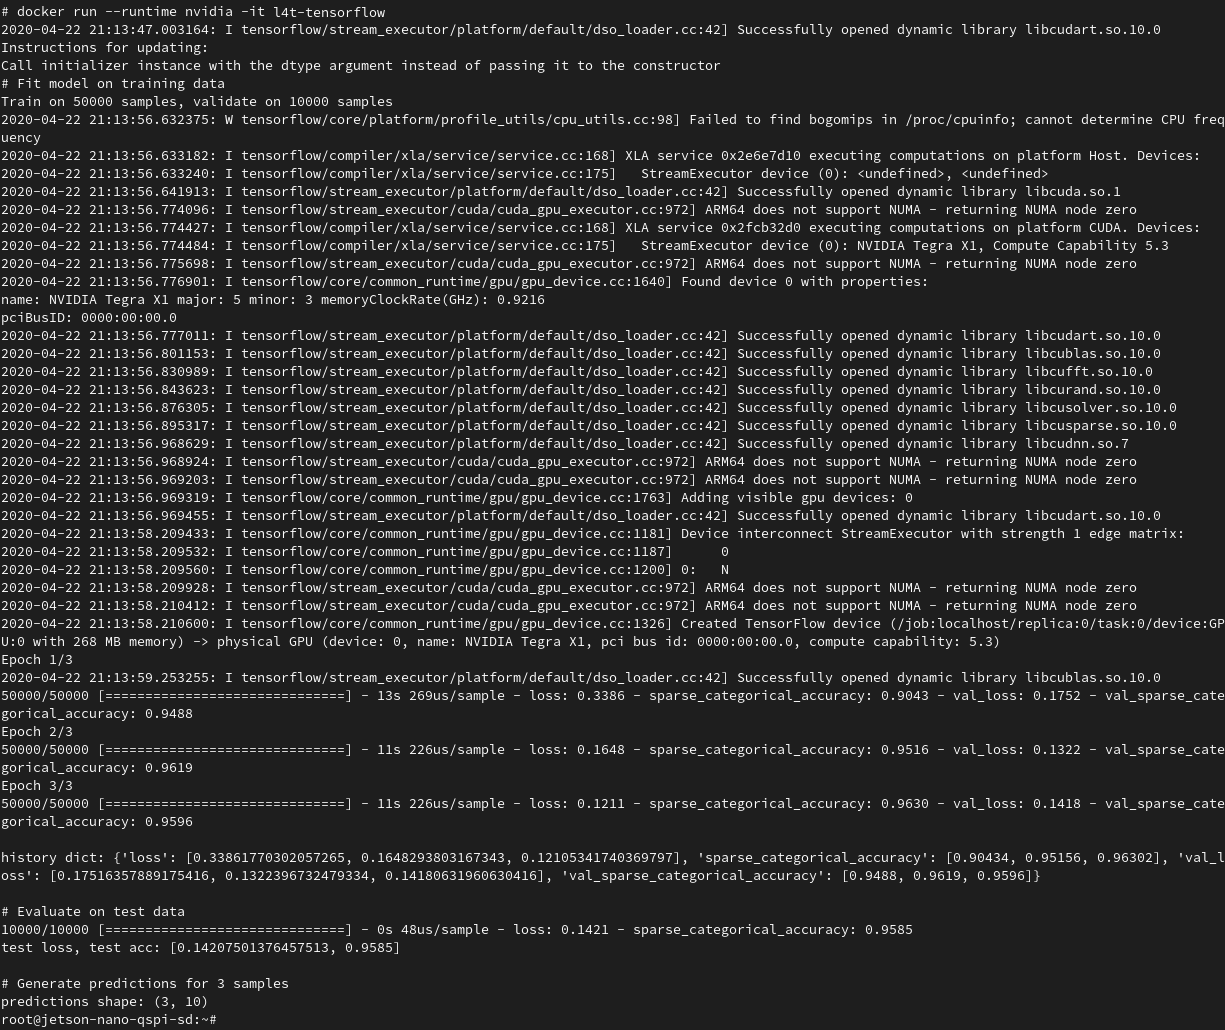 nvidia_container_results_v2